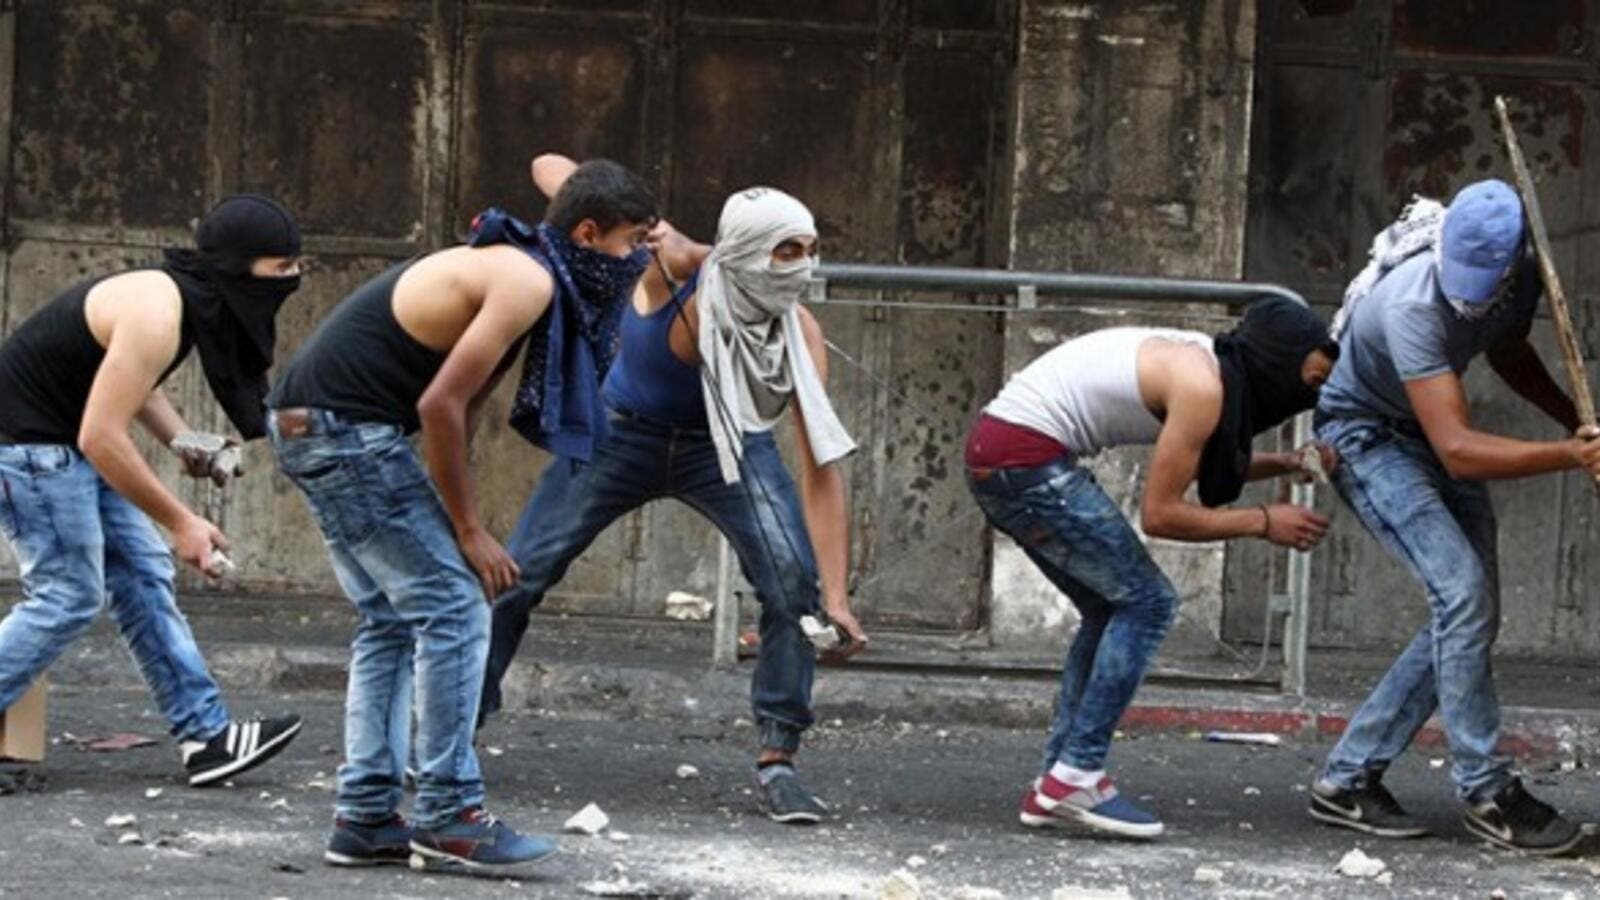 Palestinian youths throw stones towards Israeli security forces during clashes in the West Bank town of Hebron on October 4, 2015. (AFP/File)